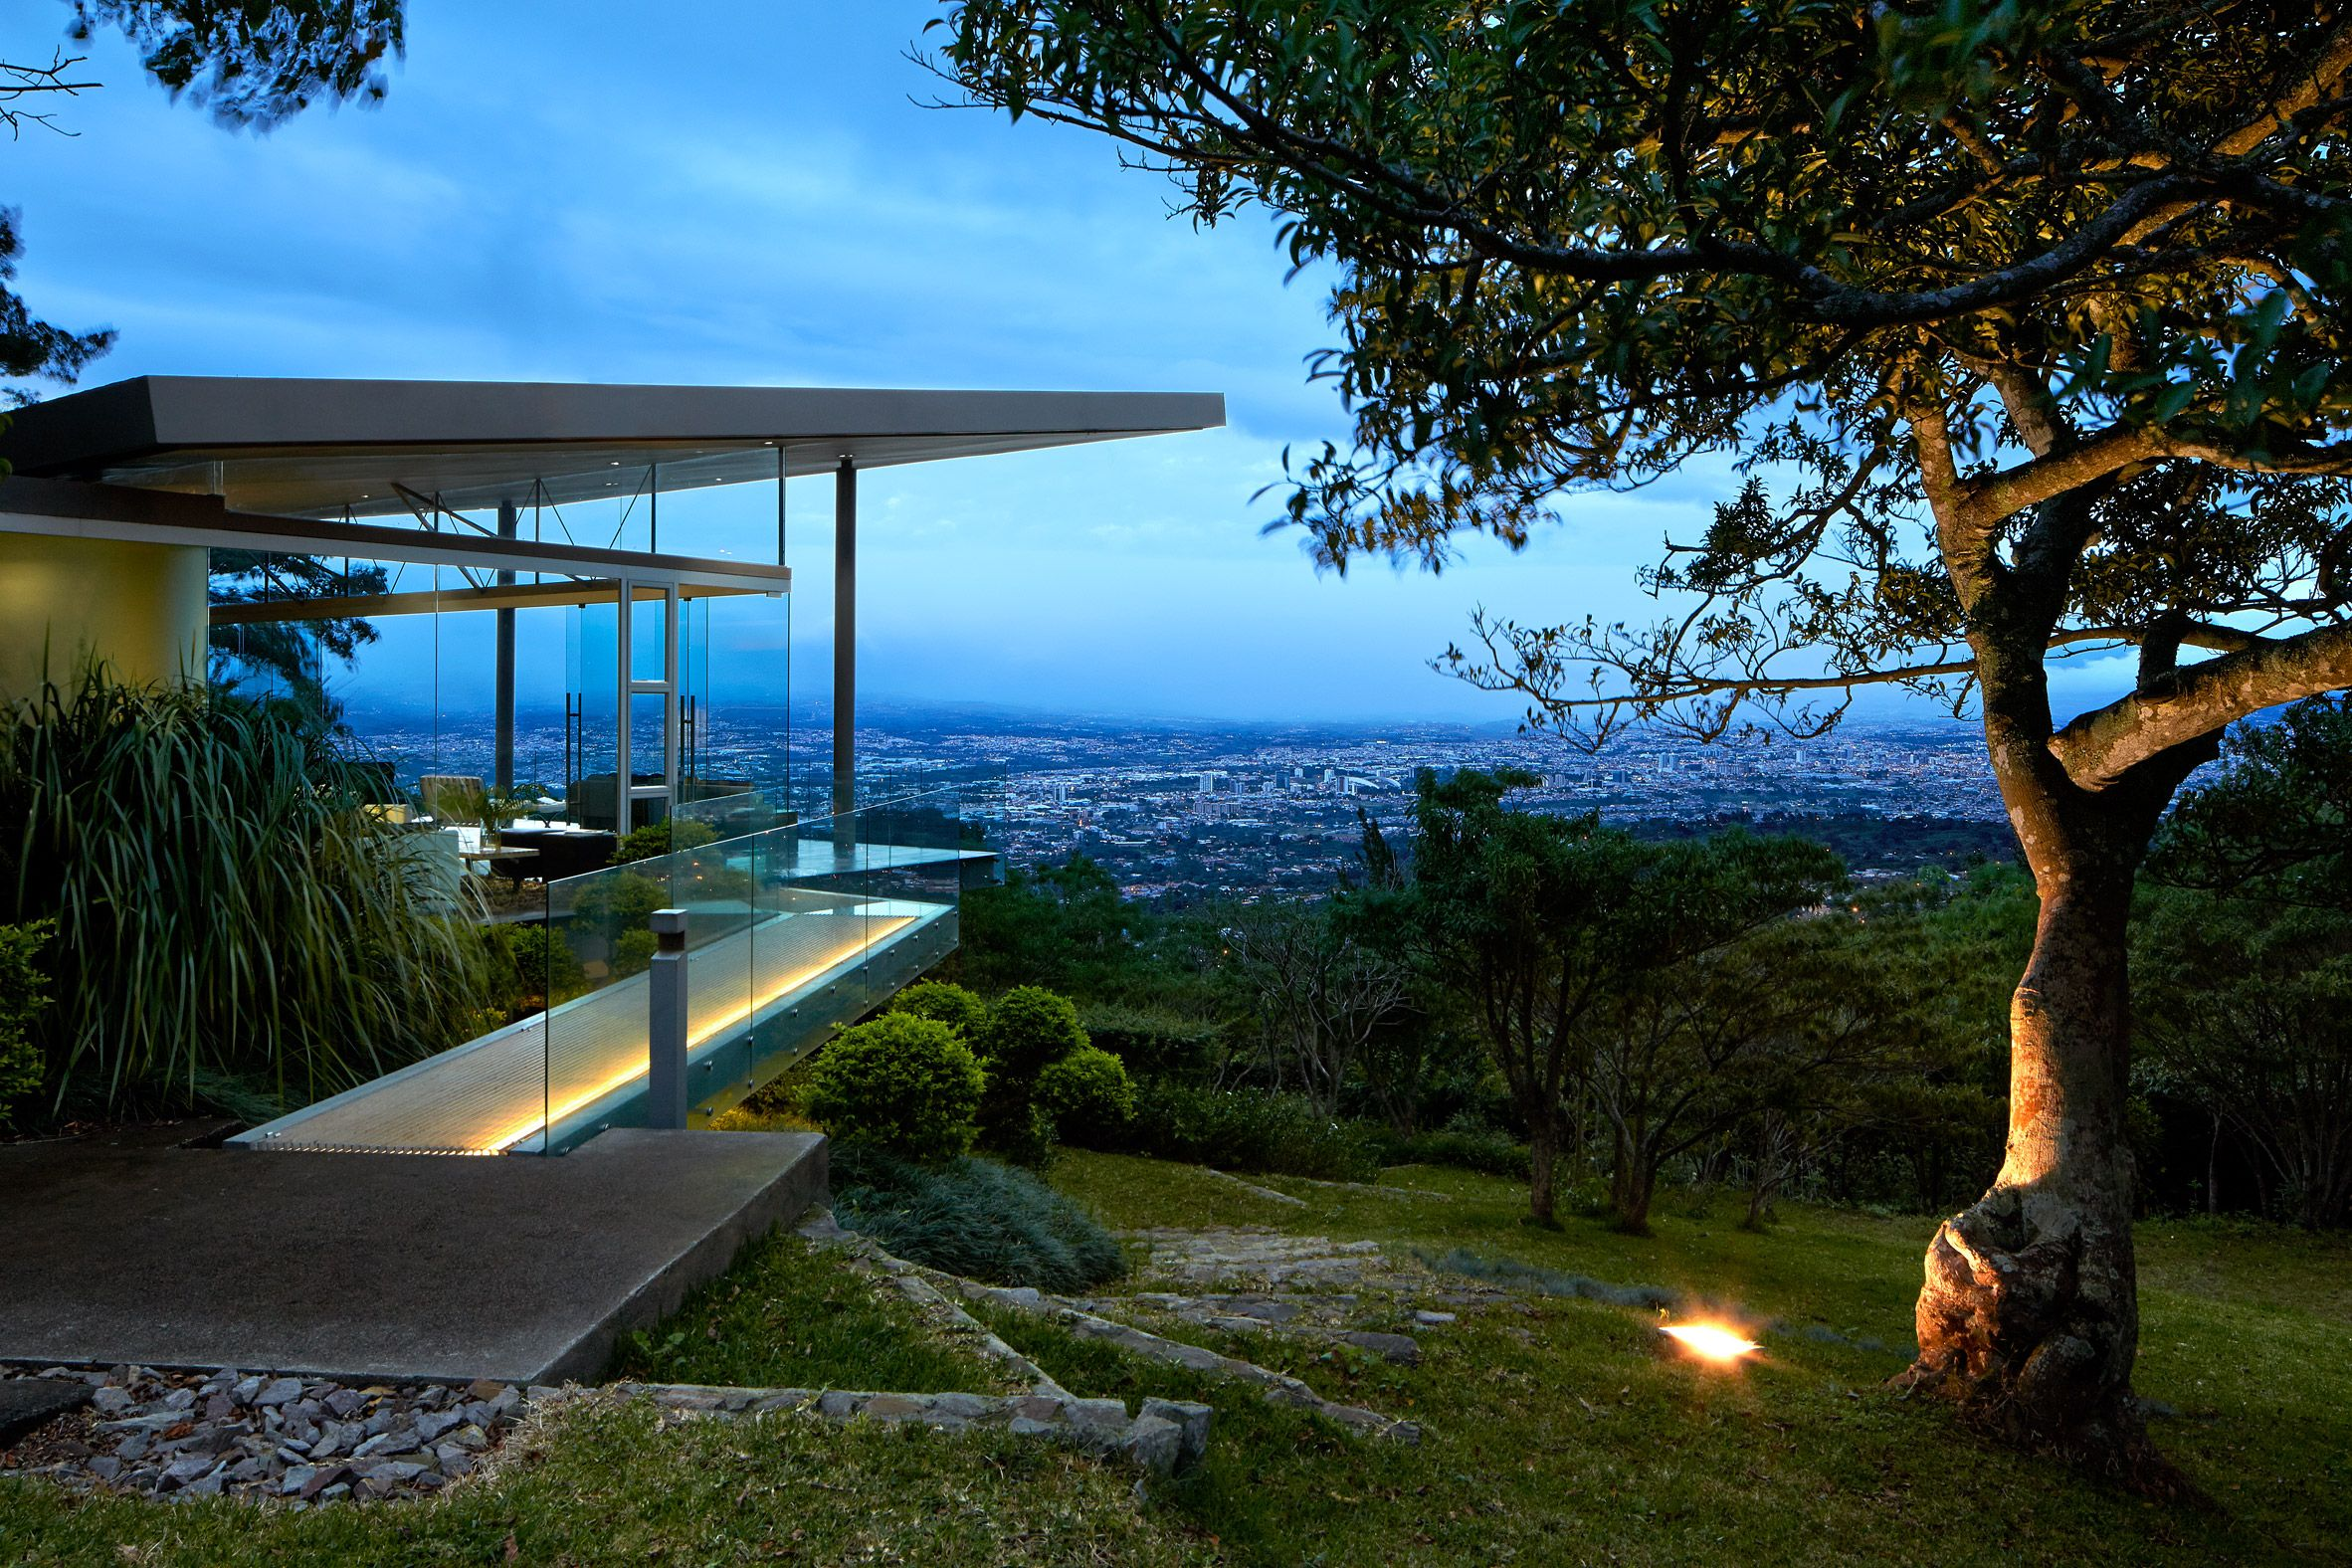 Estancia Y Ficus By Canas Arquitectos With Images Houses In